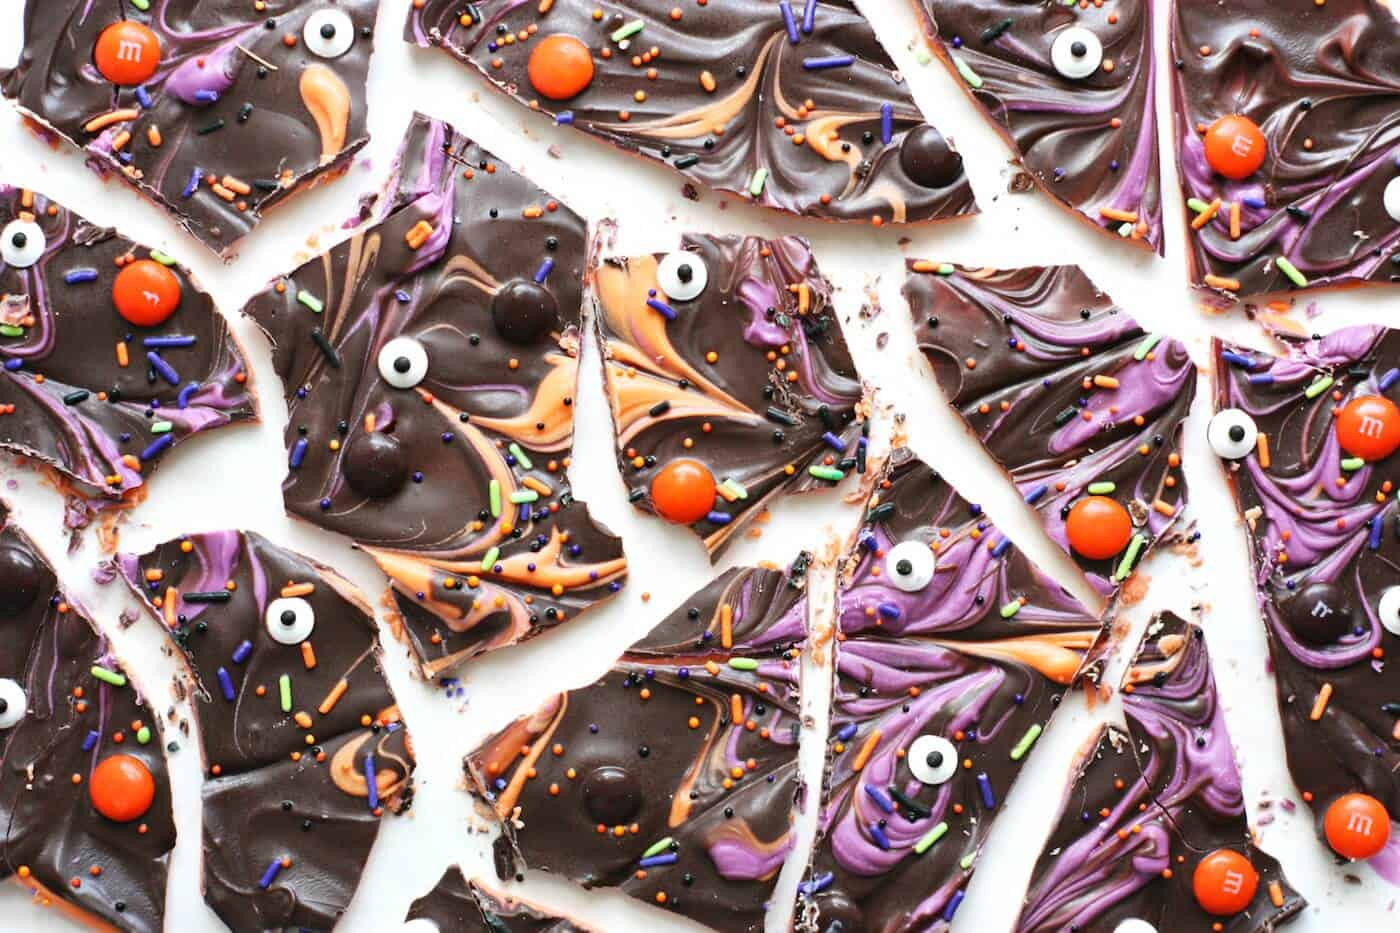 Deliciously Spooky Layered Halloween Bark